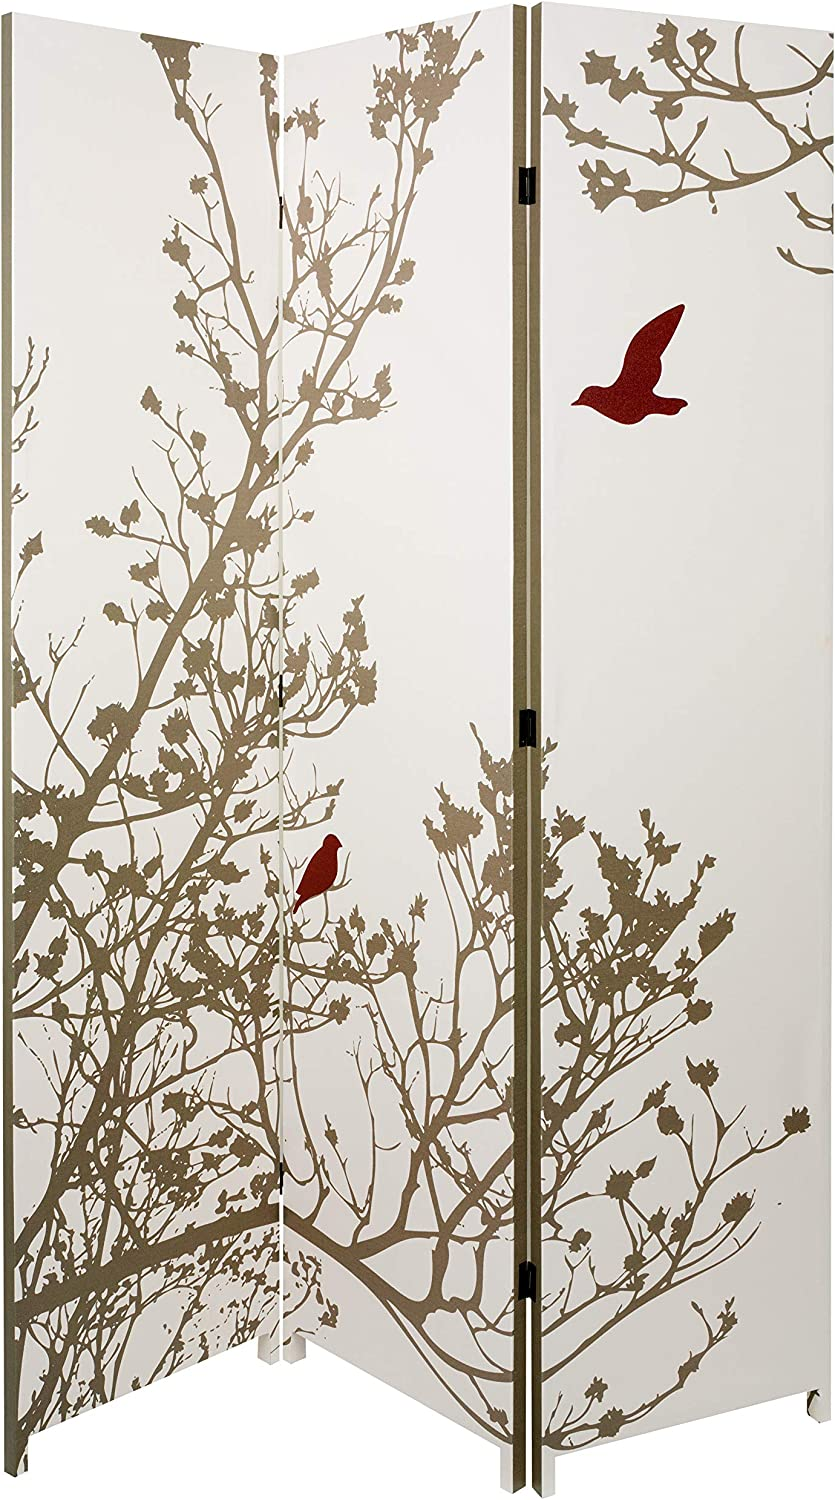 nexxt Bota Triple-Panel Floor Screen, Taupe Branches and Birds